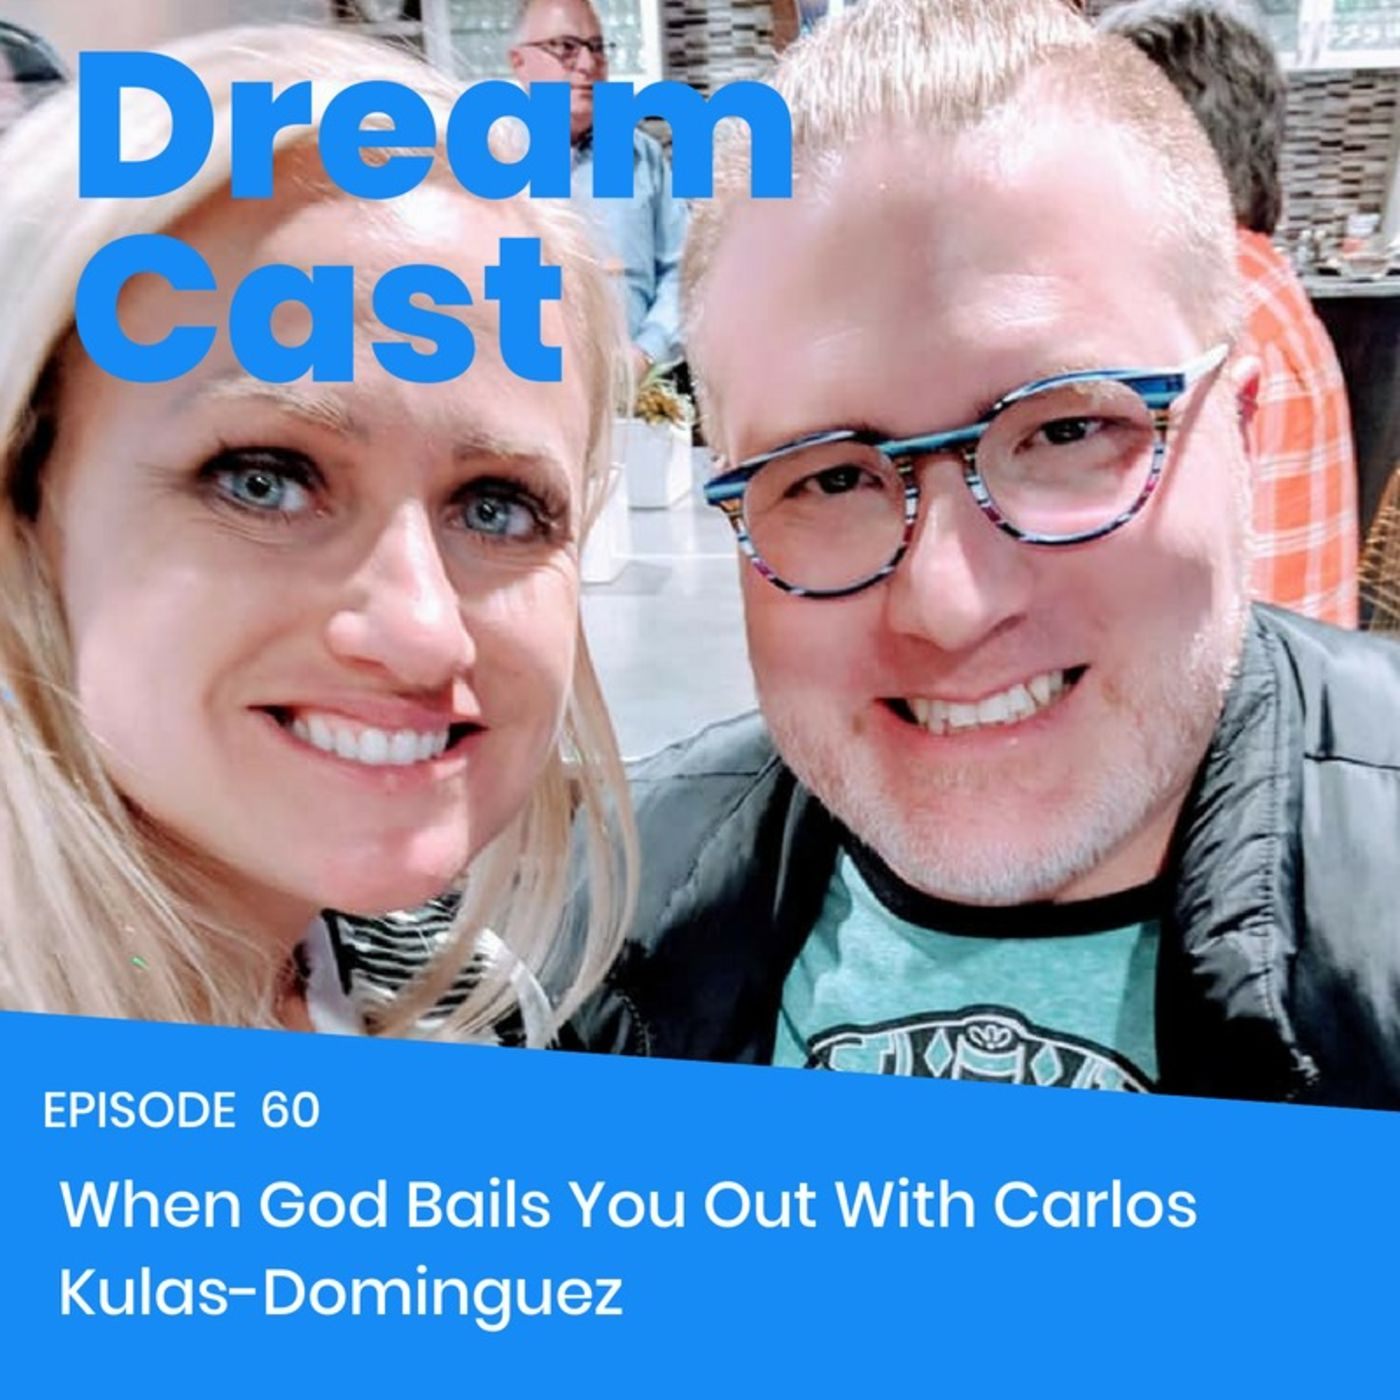 Episode 60 - When God Bails You Out with Carlos Kulas-Dominguez